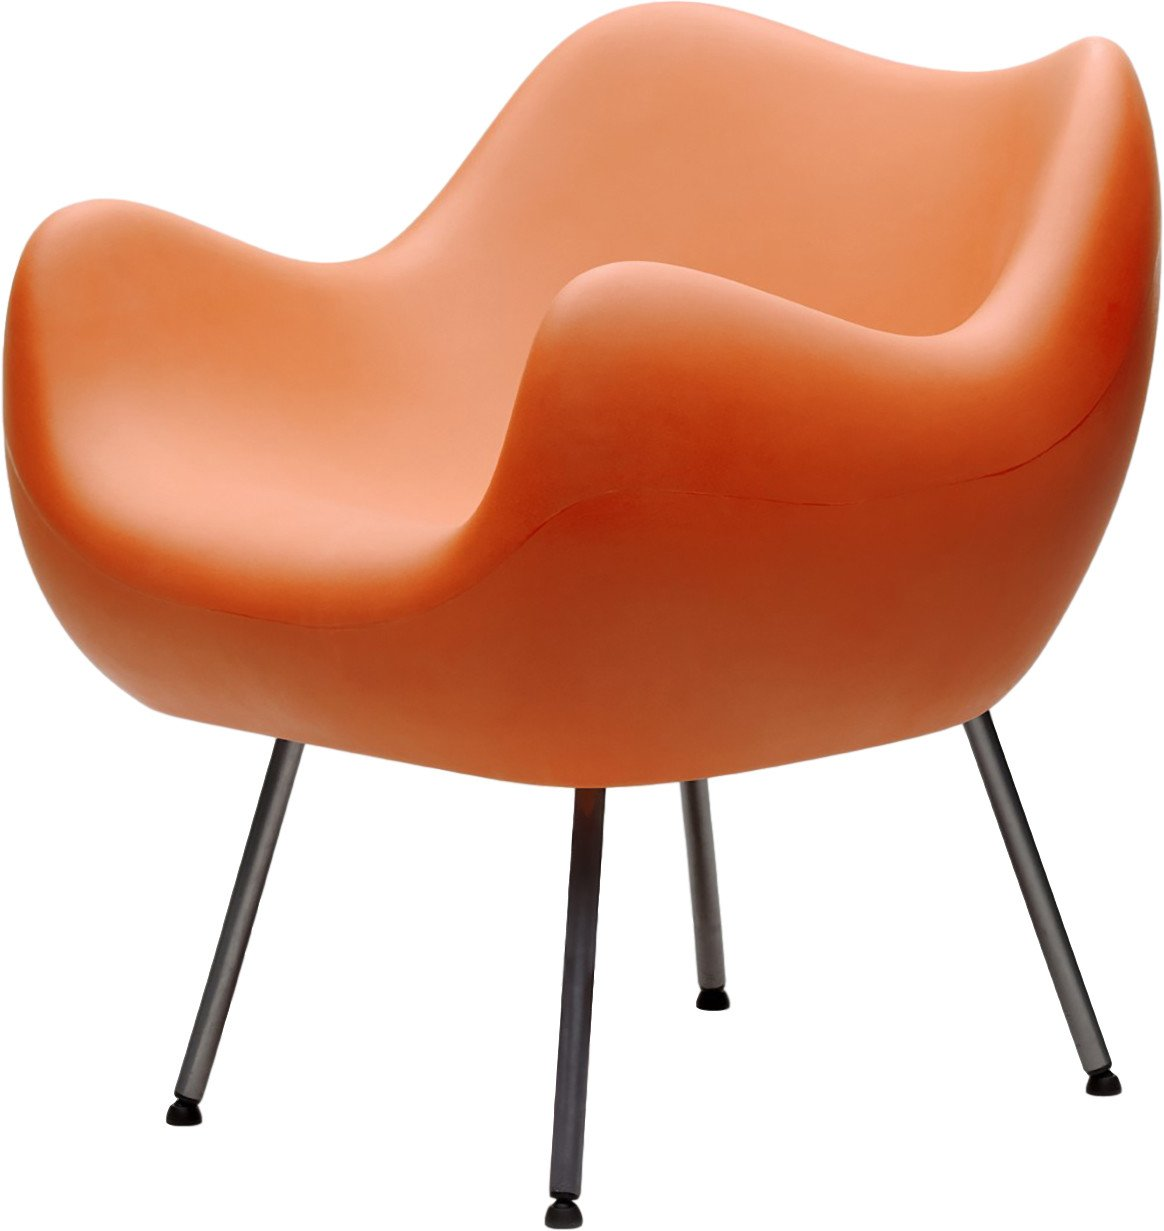 RM58 Armchair Matte Orange by R. Modzelewski for VZÓR